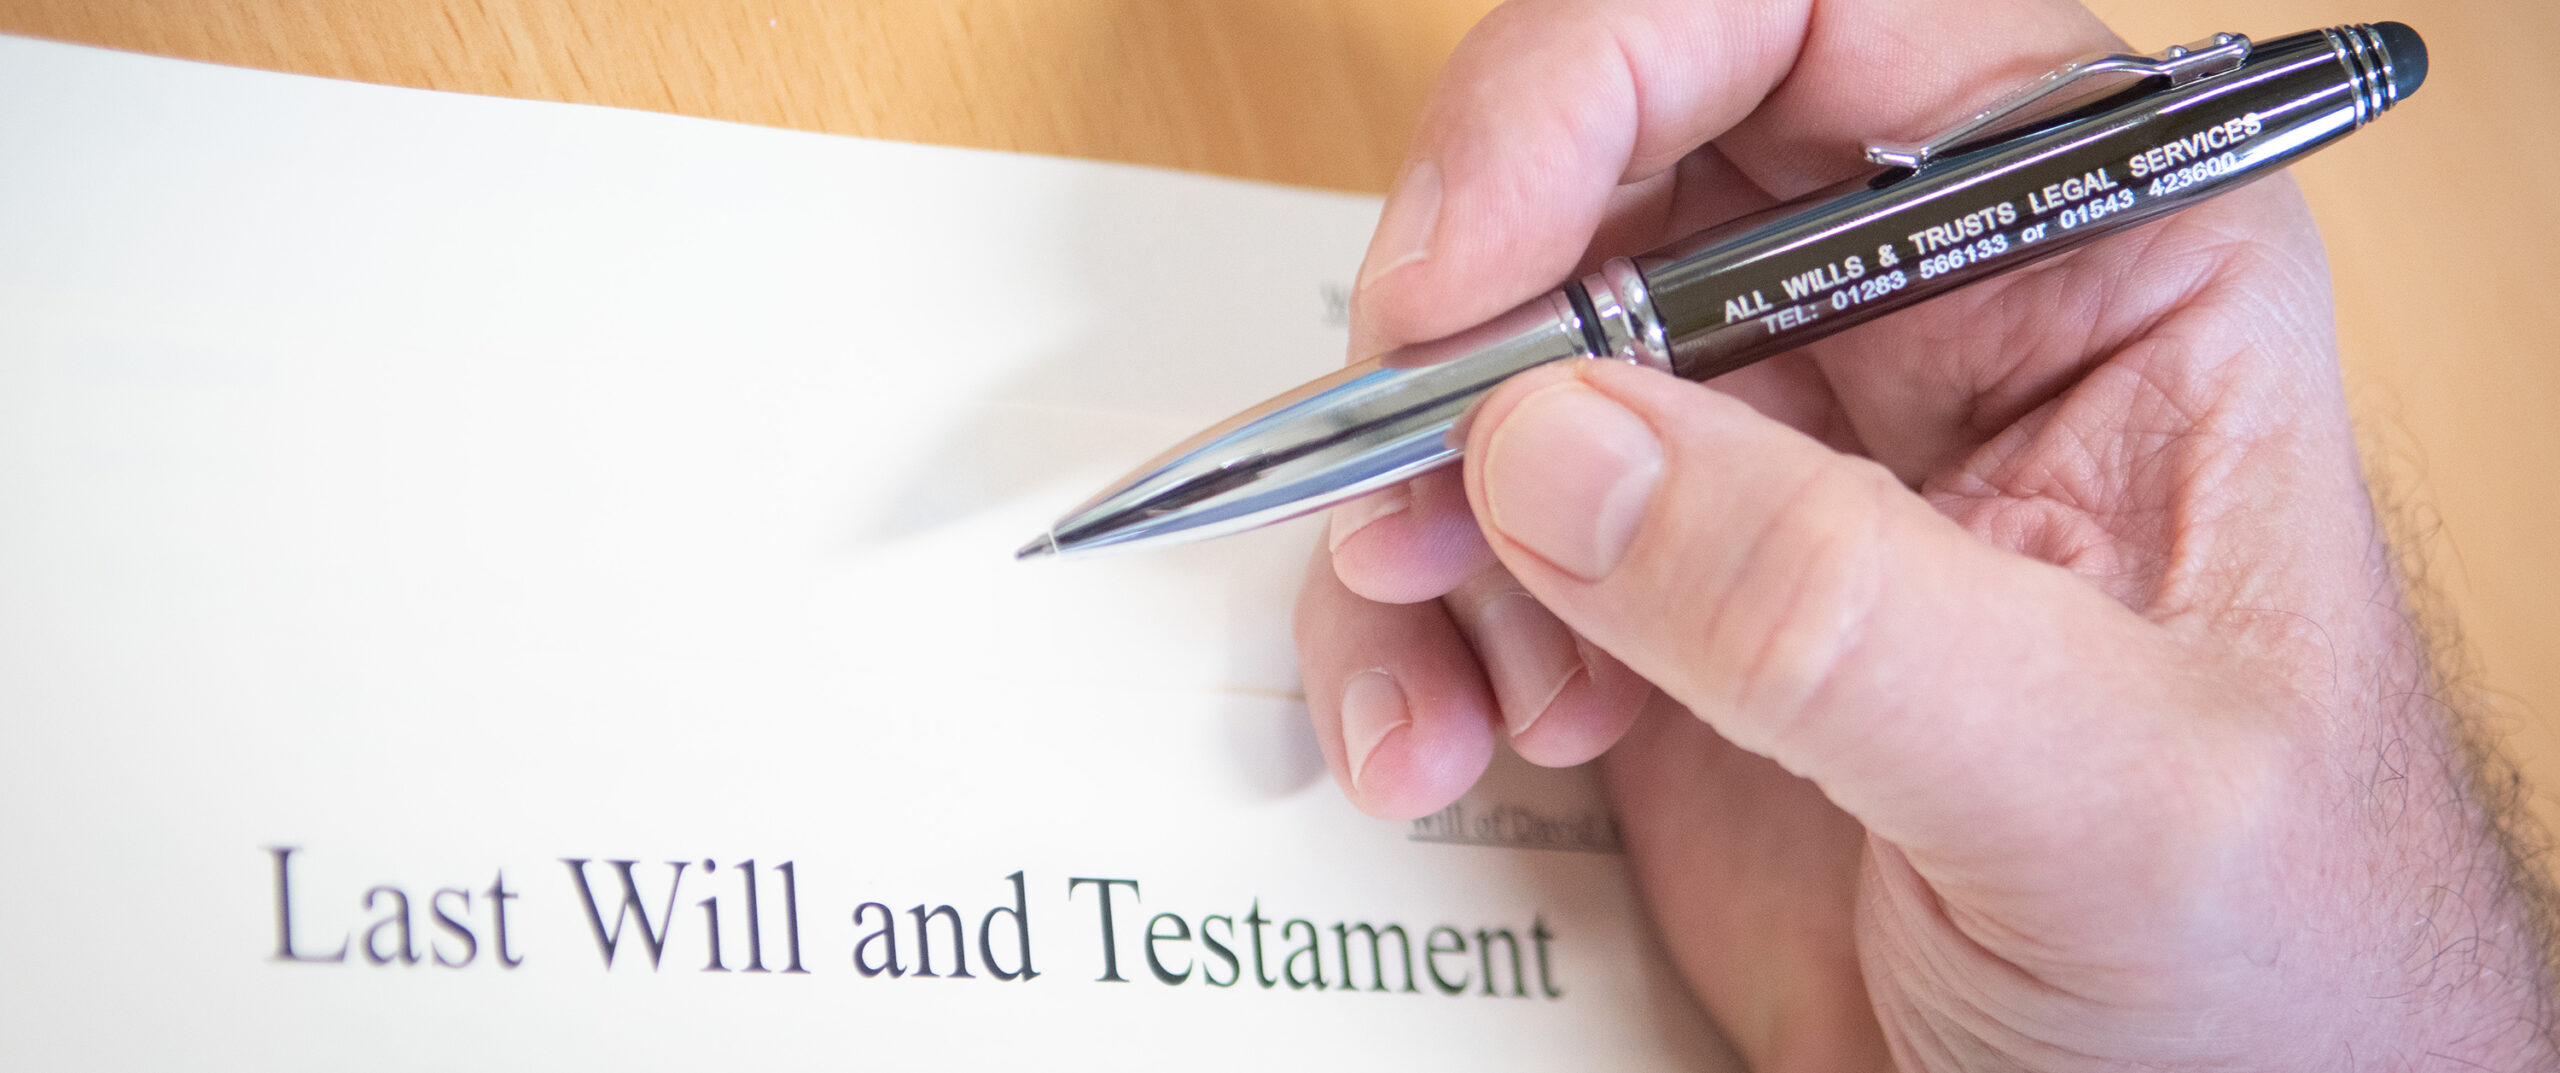 The Last Will and Testament at All Wills & Trusts